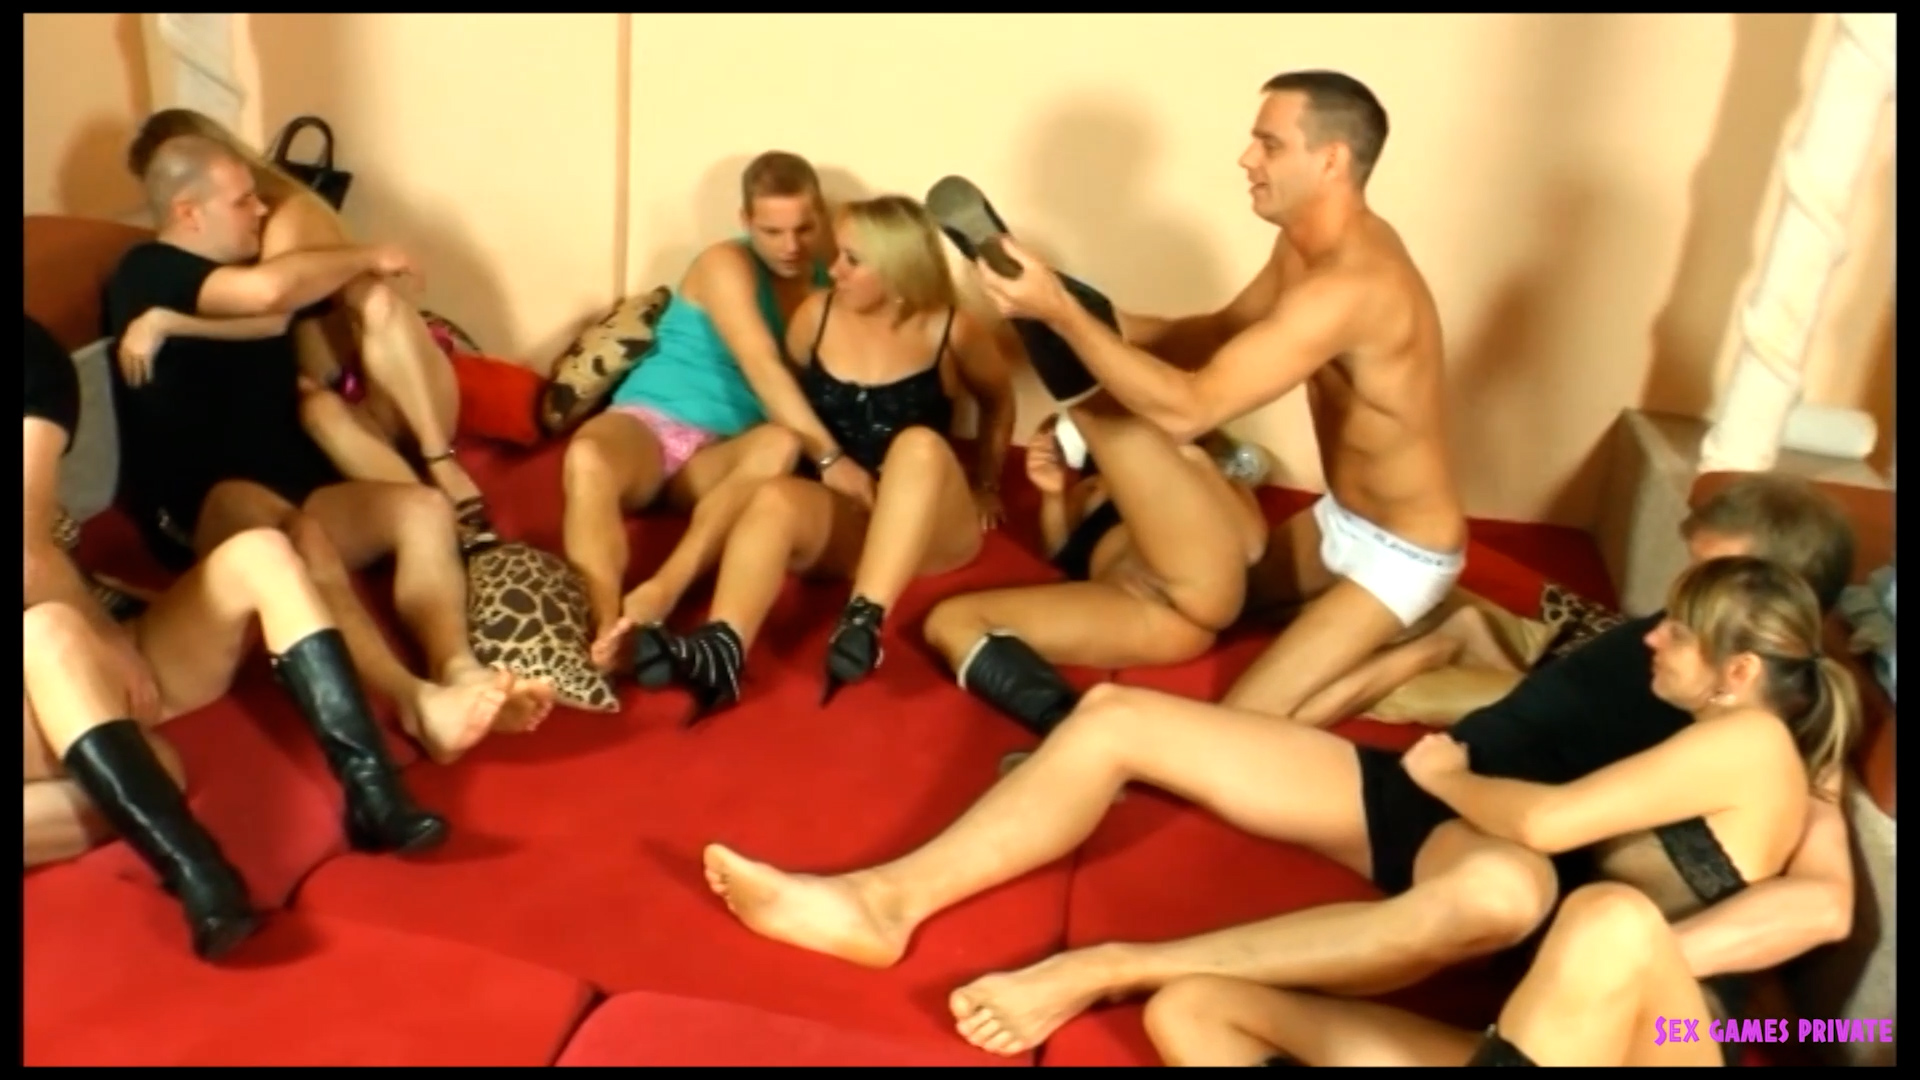 Kinky Swingers Orgy - part 1